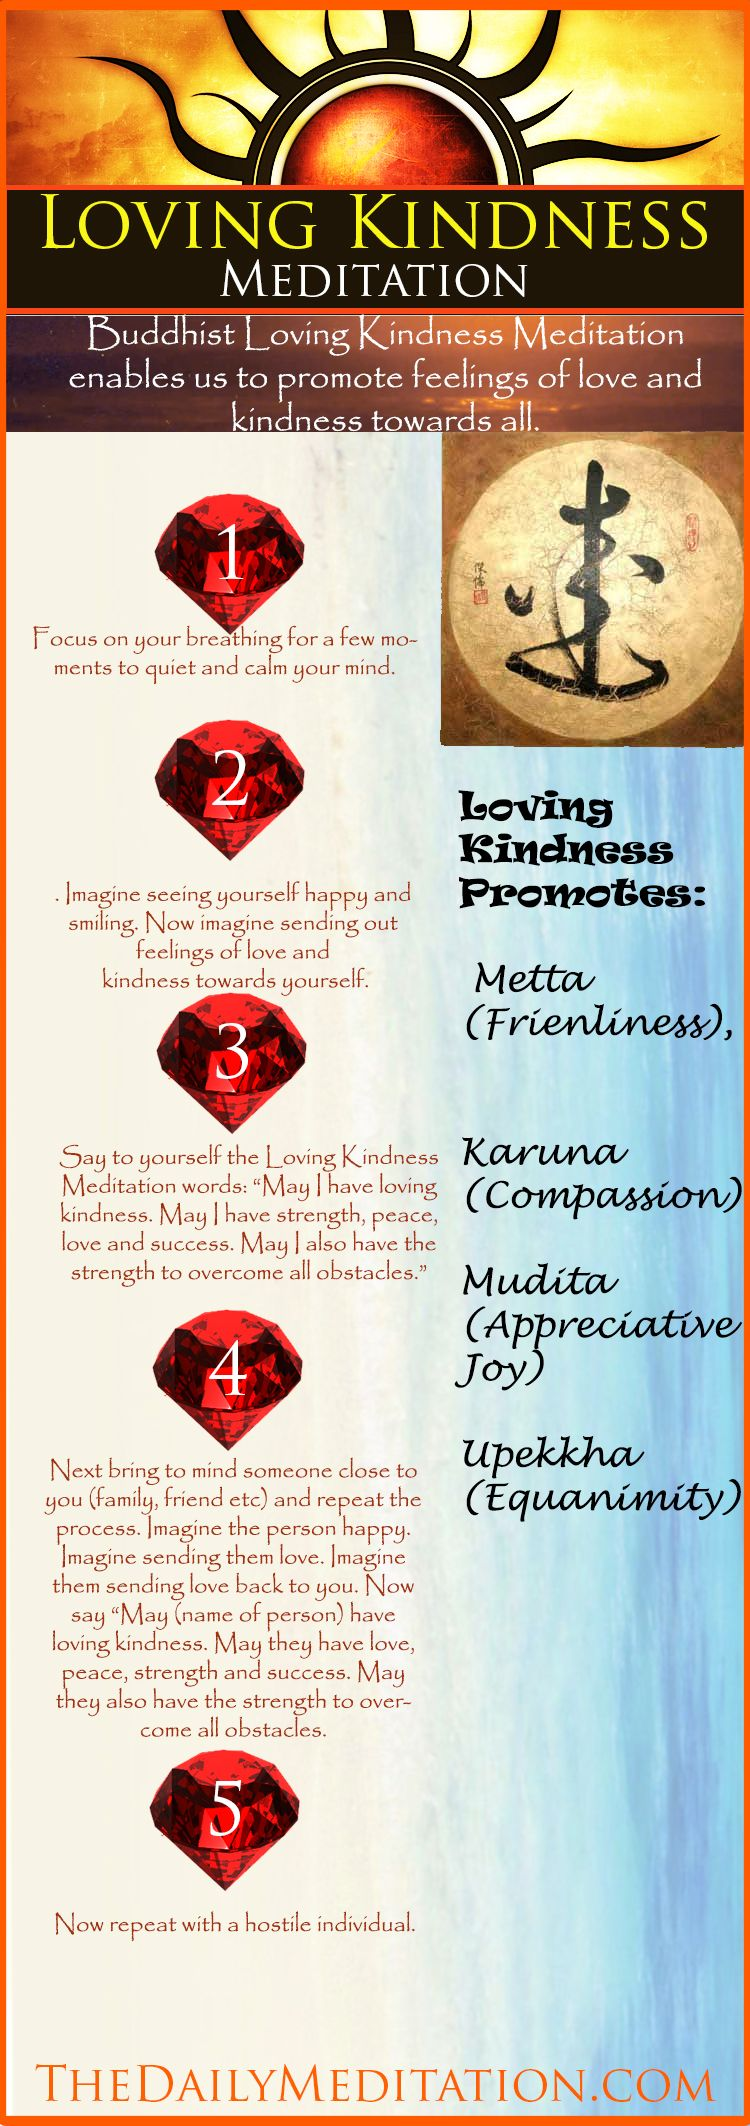 Loving Kindness Quotes Infographic Showing Loving Kindness Meditation Instructions